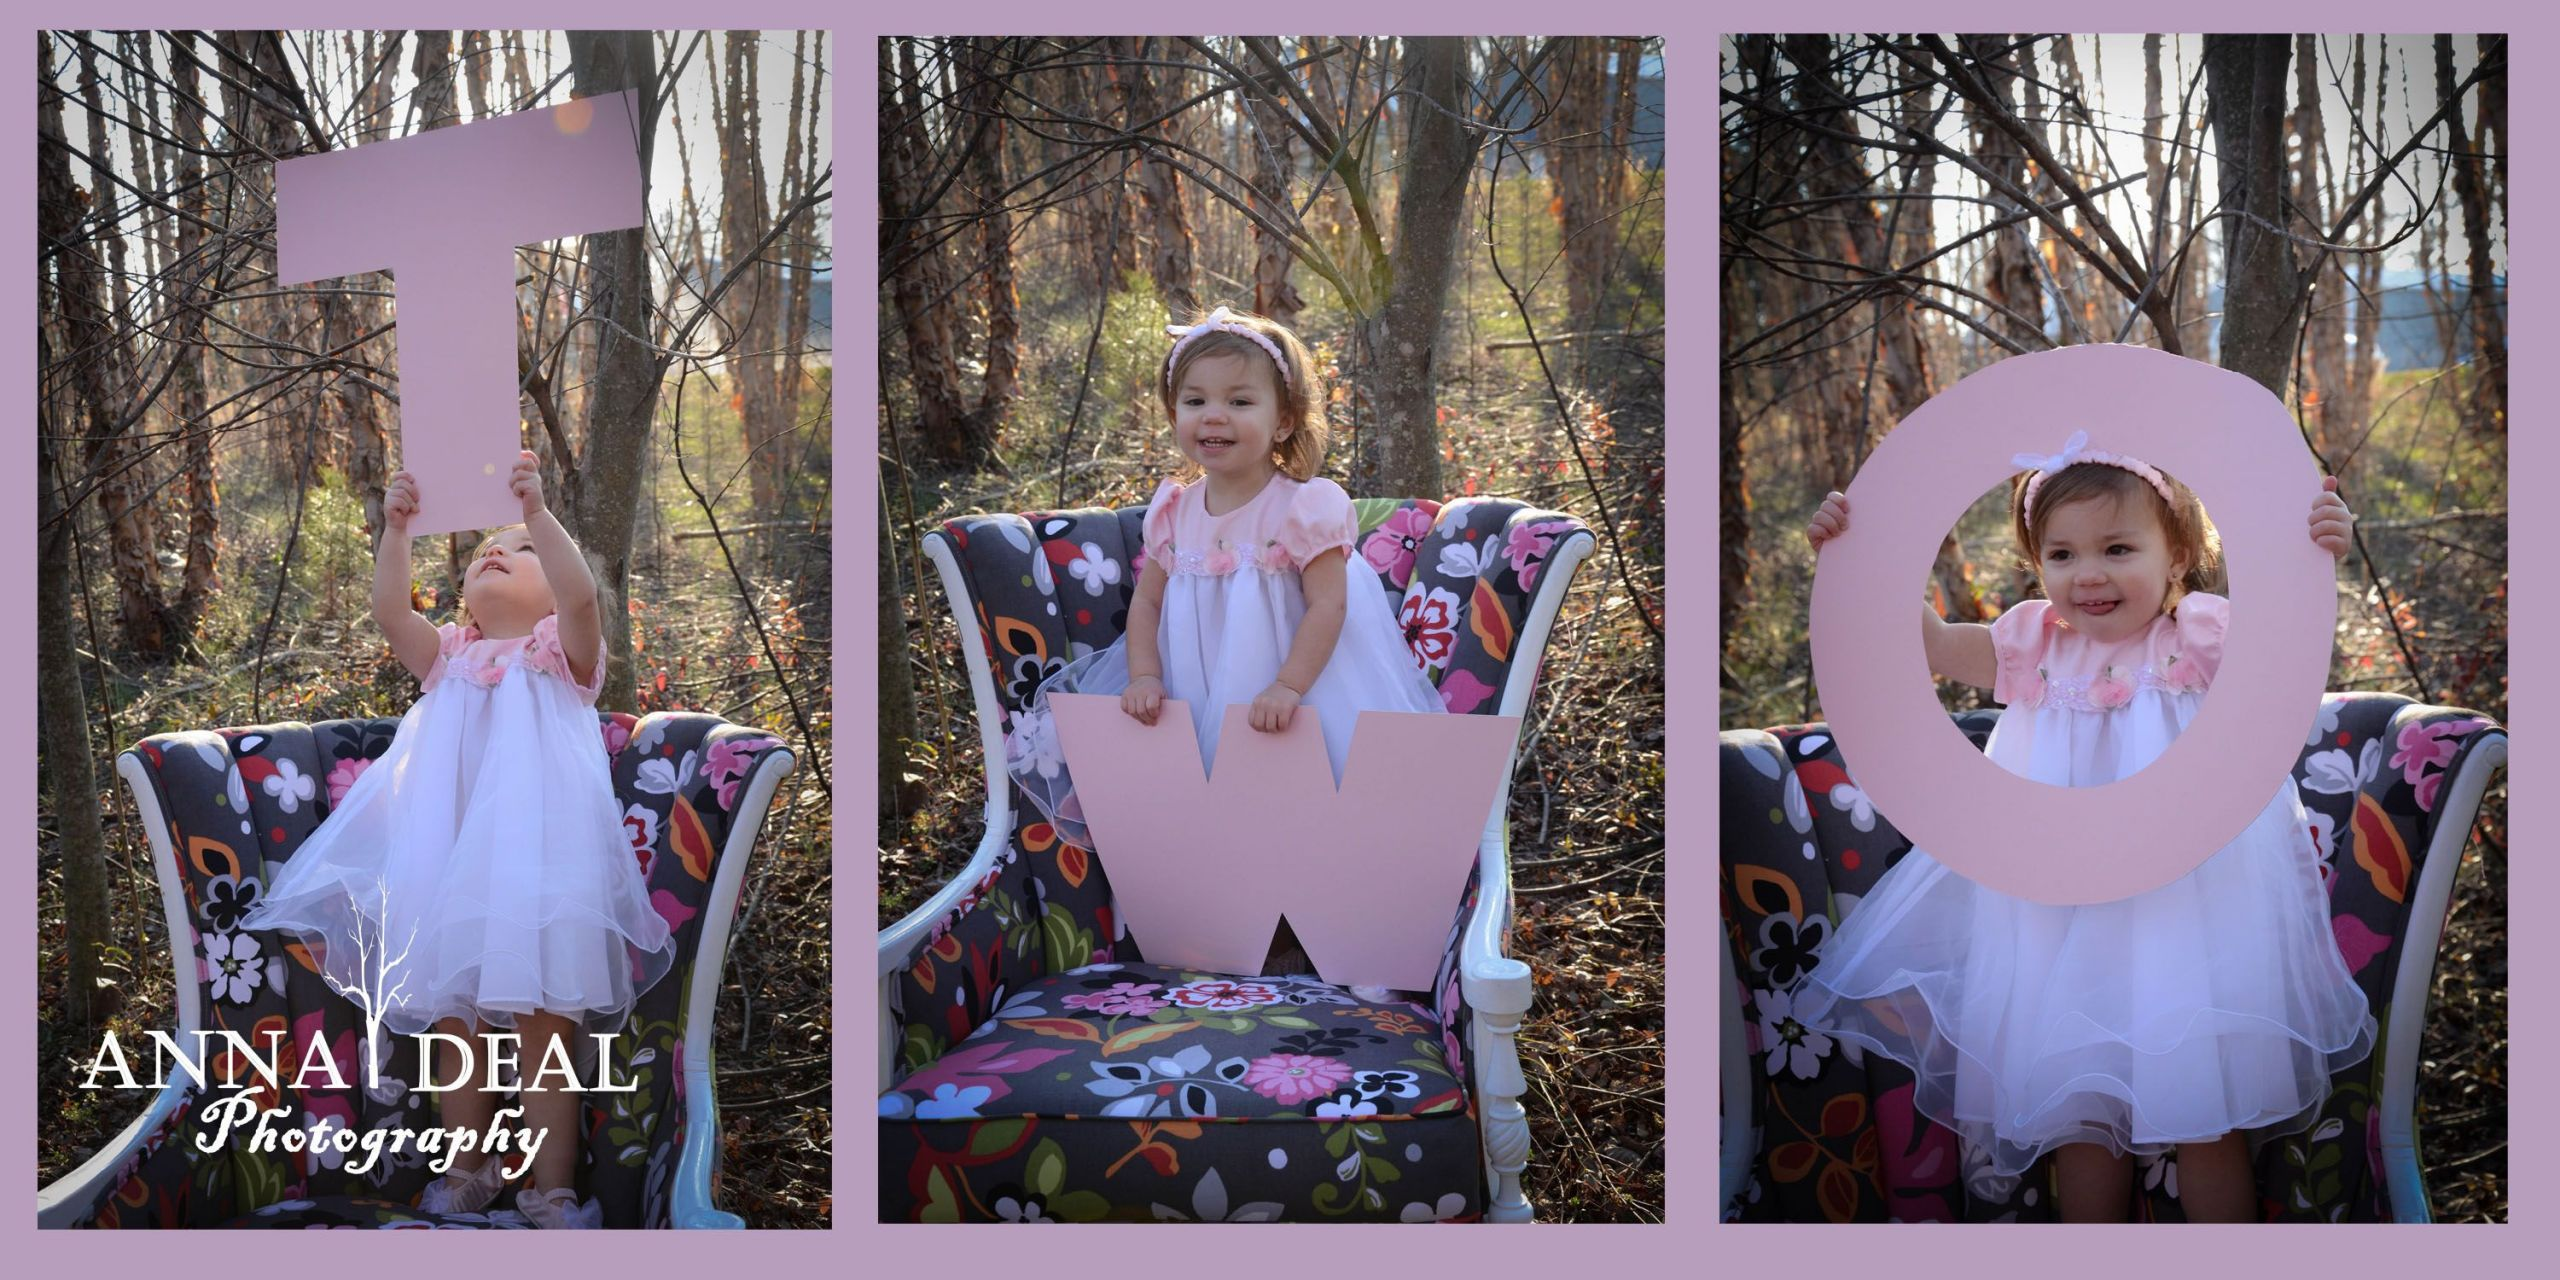 Birthday Party Ideas For 2 Year Girl  Pin by Anna Wiseman on My photography